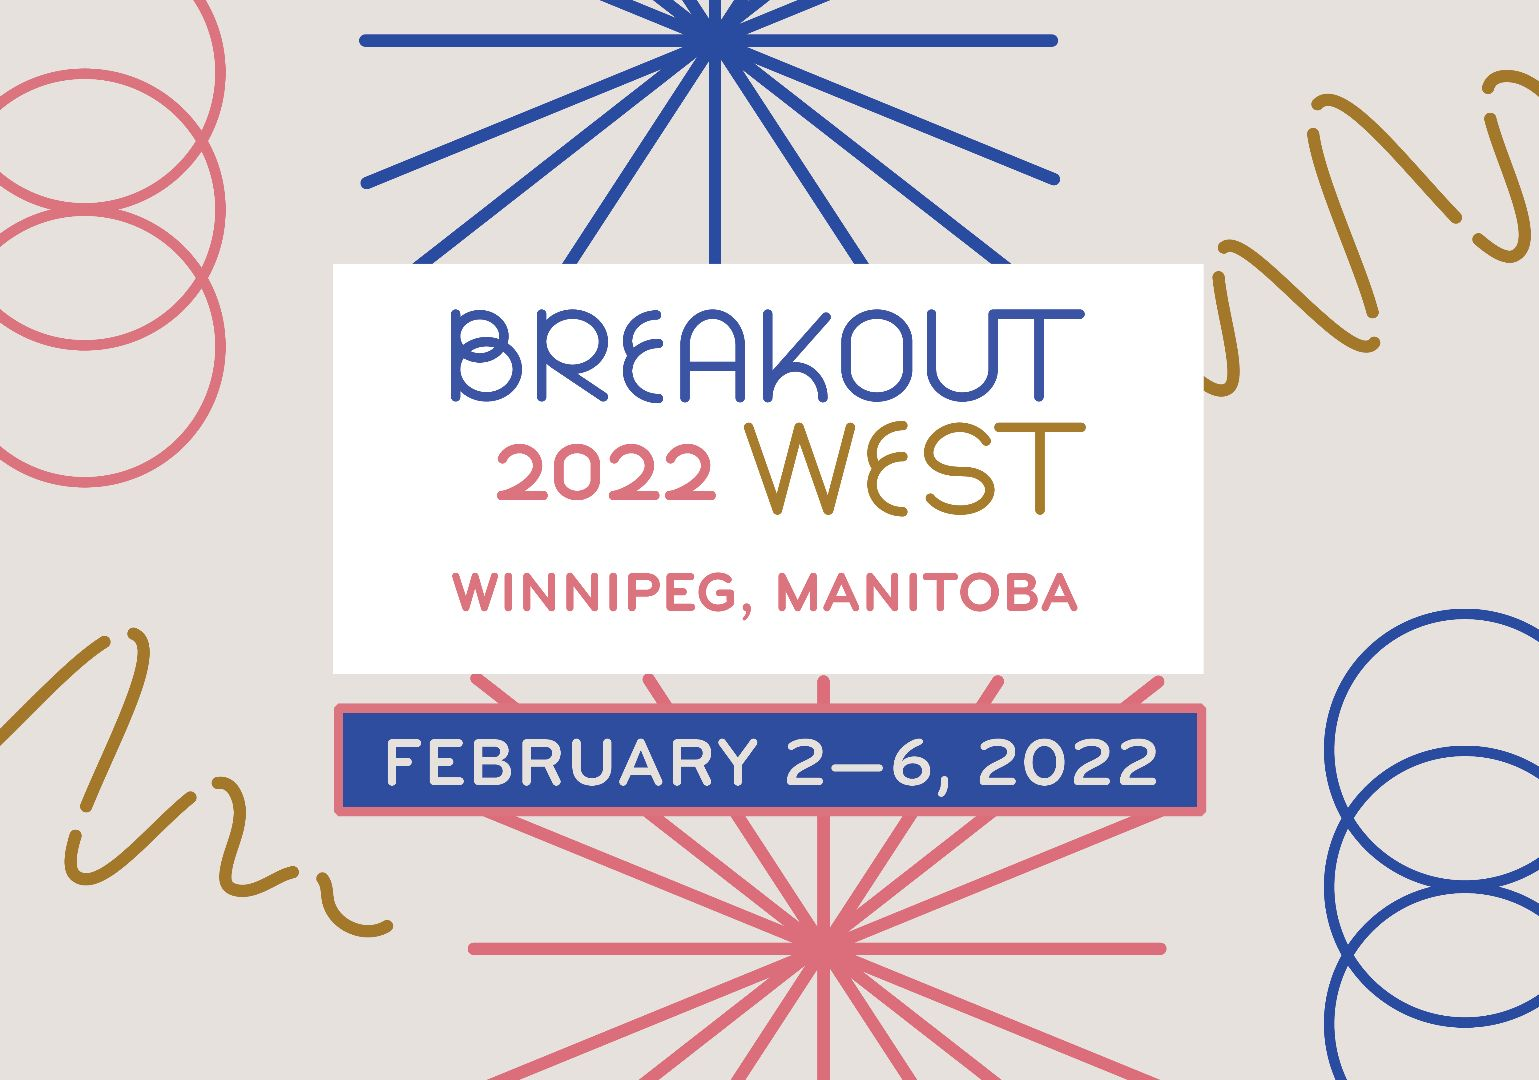 Get Your Pass To BreakOut West 2022